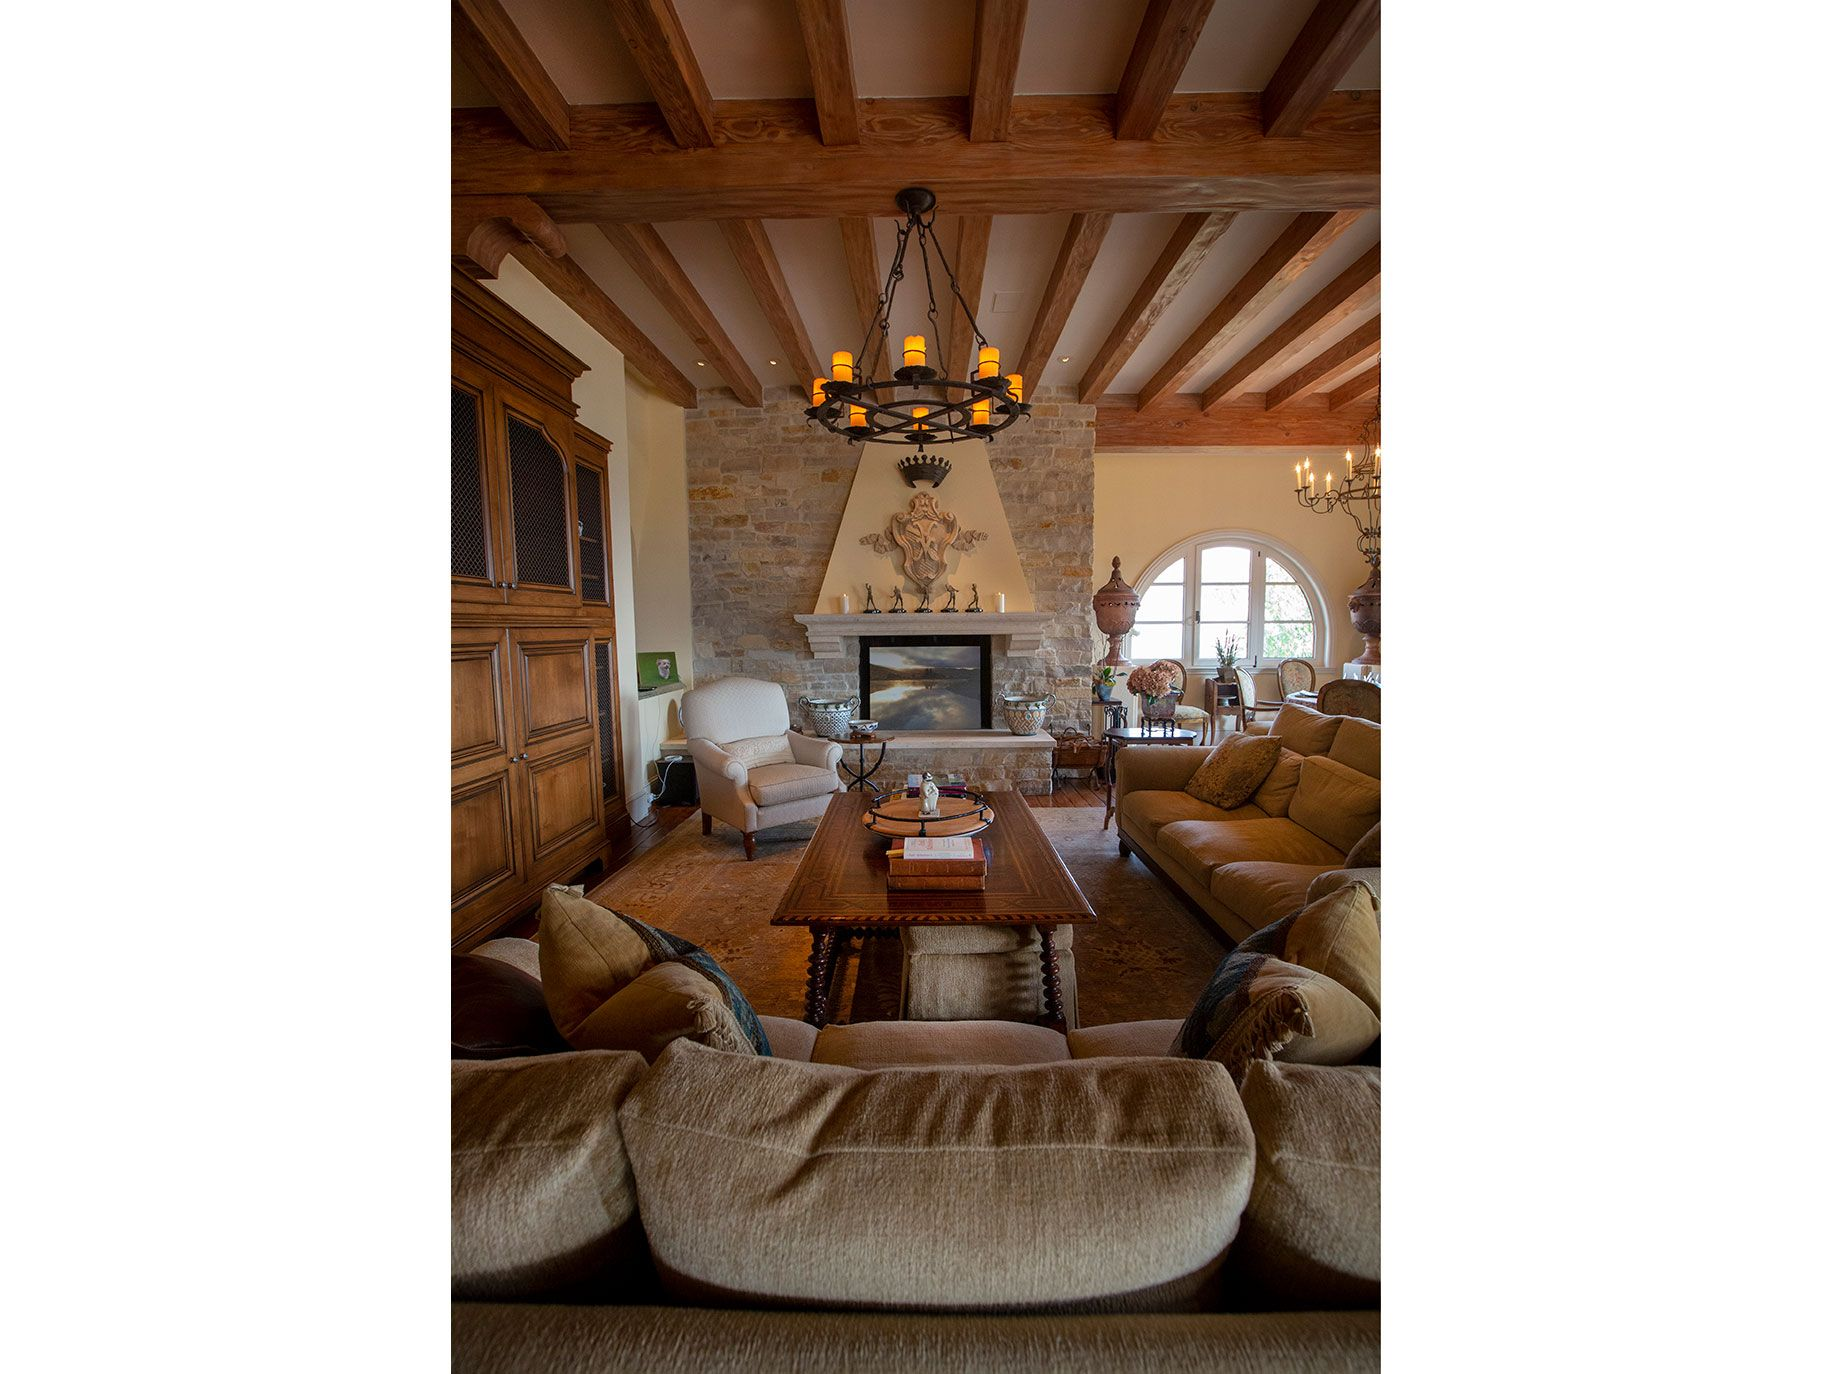 A rustic chandelier hangs from wooden beams above one of the many rooms in the Cheng estate.